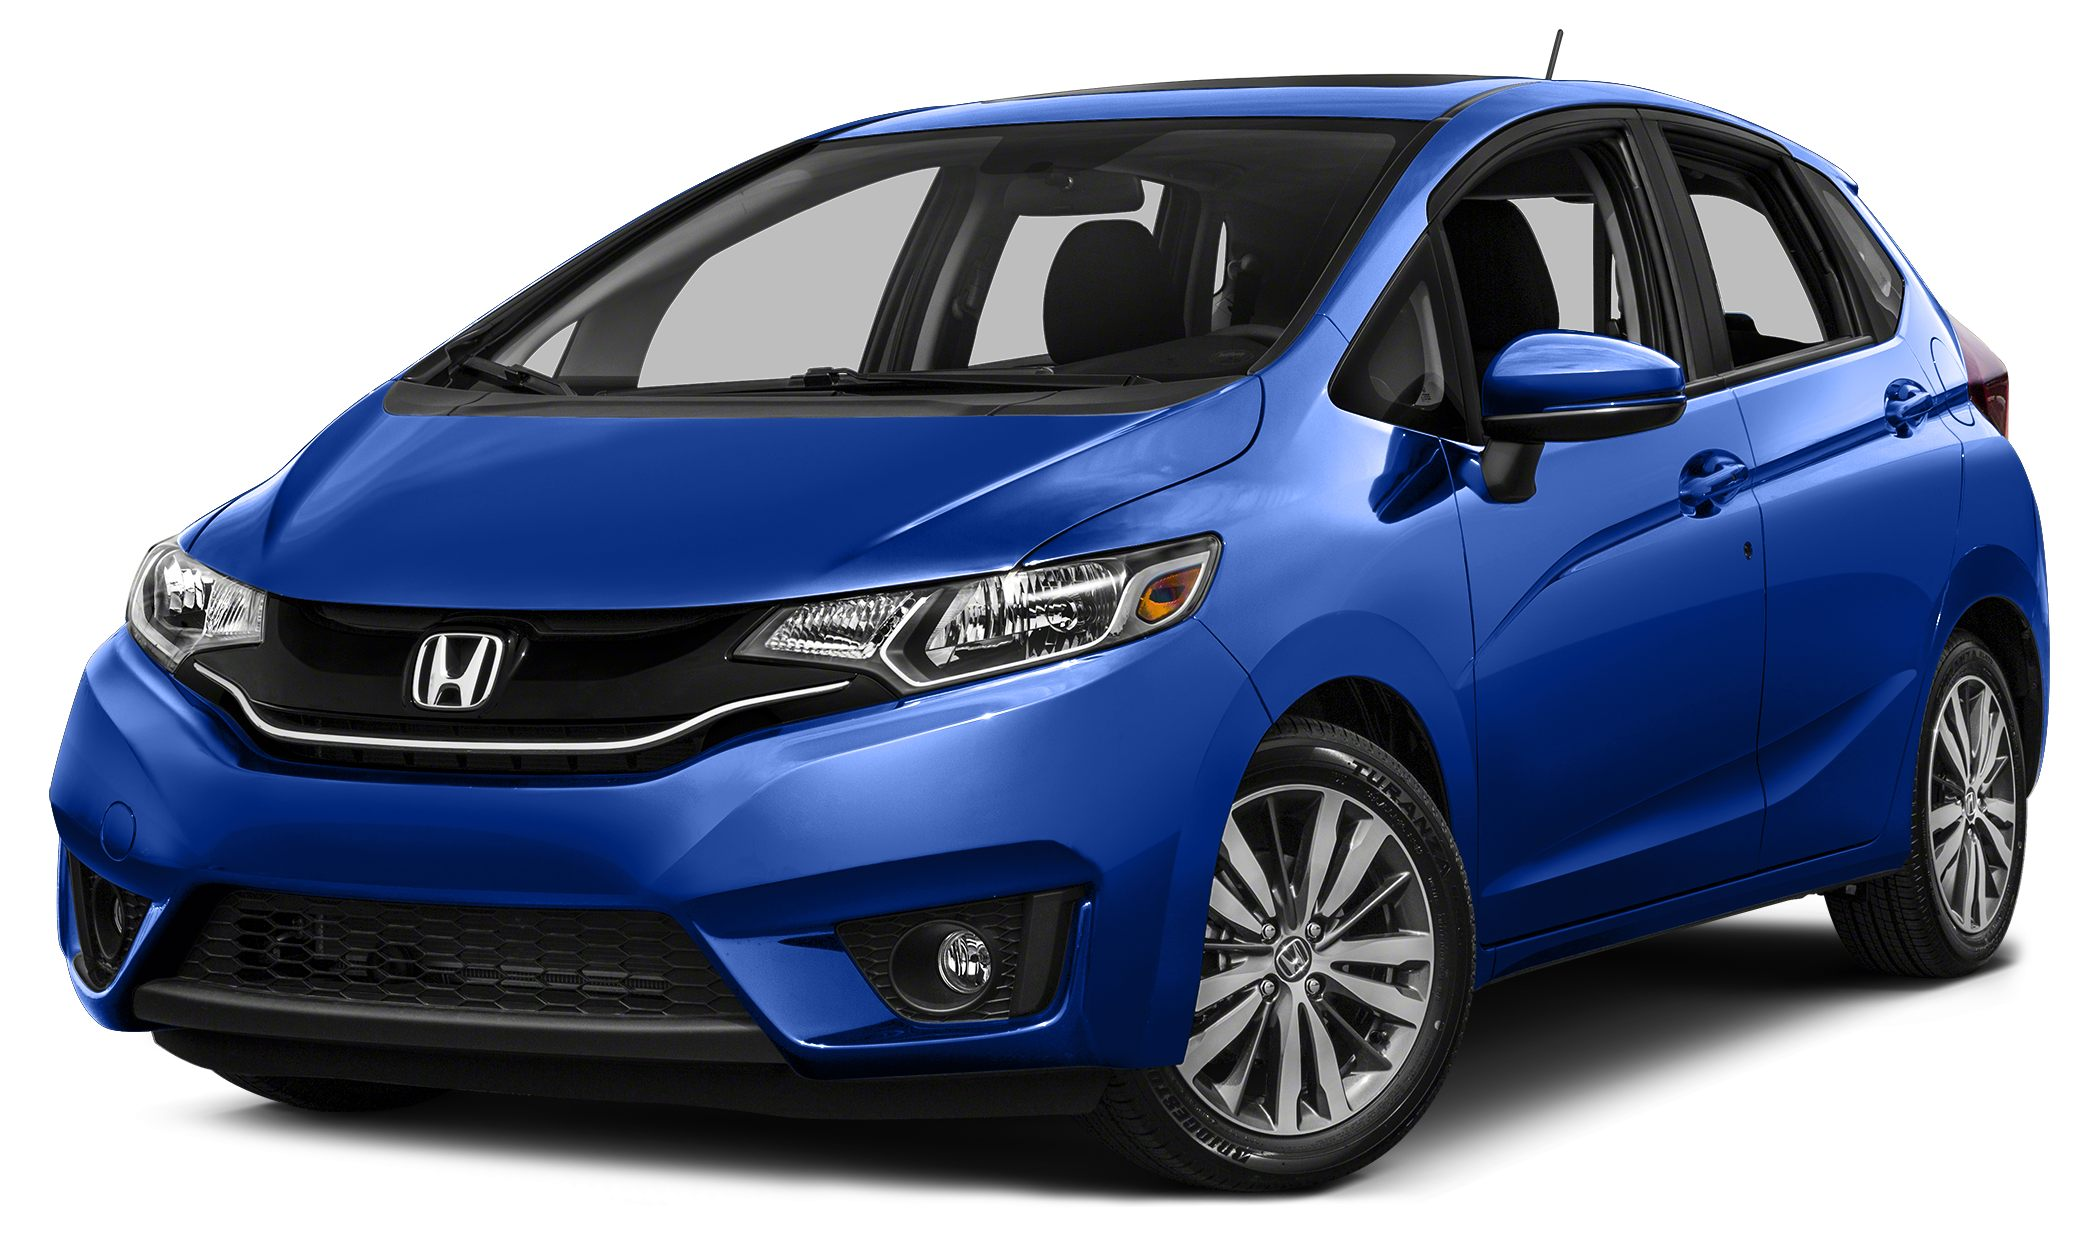 2015 Honda Fit EX MOONROOF EX CLEAN CARFAX ONE OWNER Youll be hard pressed to find a nicer 20